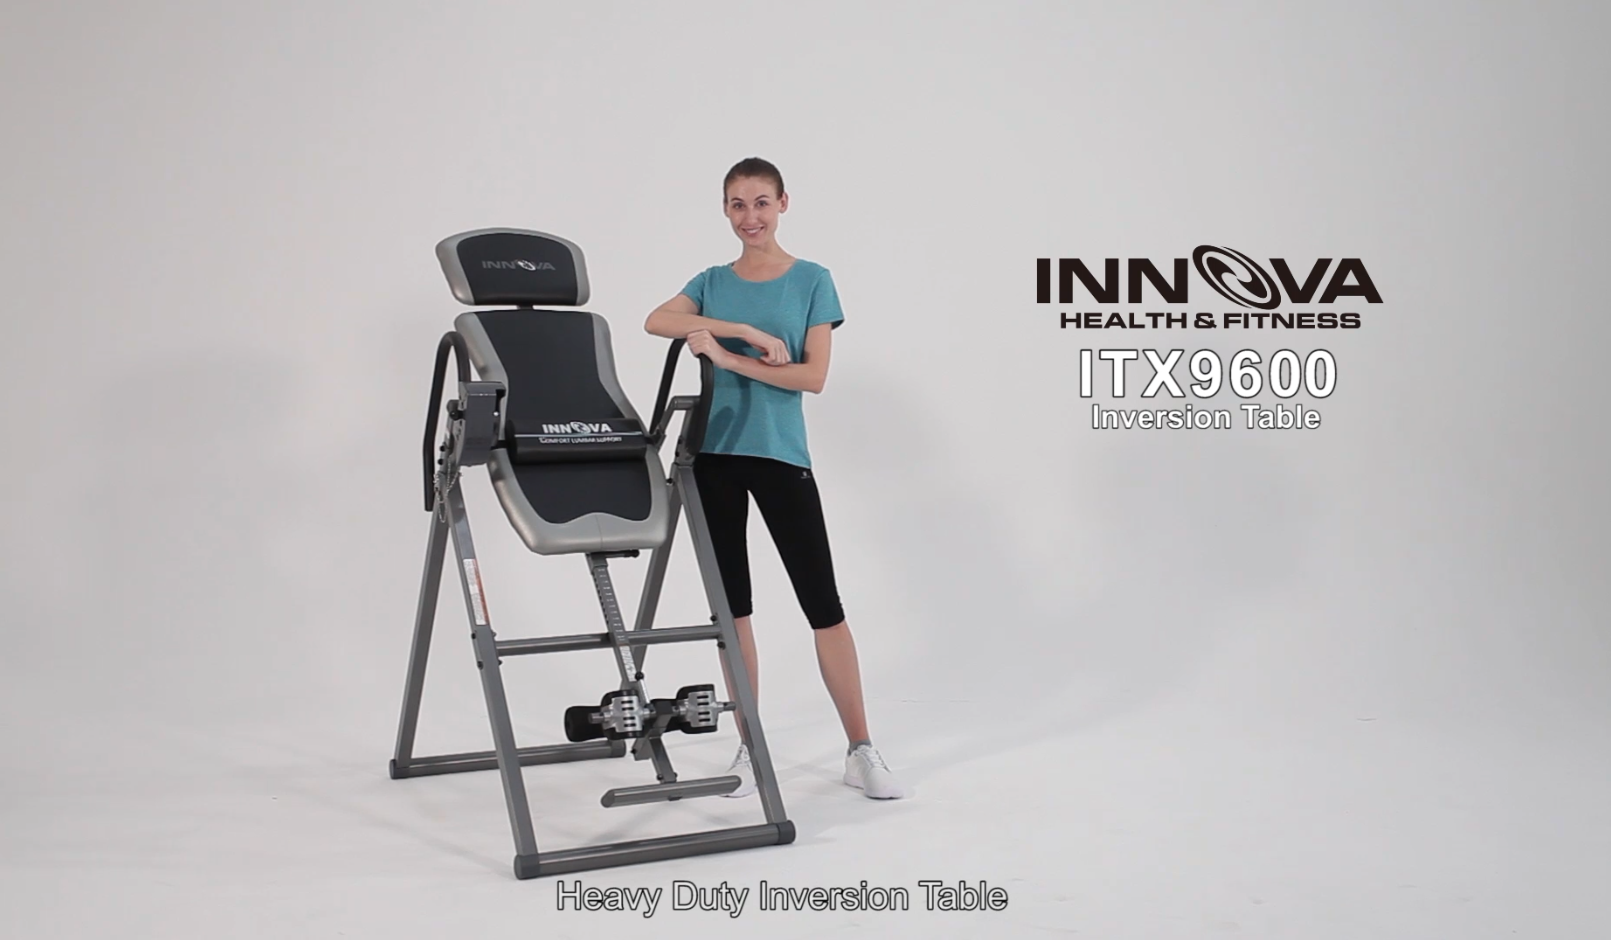 ITX9600 Heavy Duty Inversion Table with Adjustable Headrest /& Protective Cover